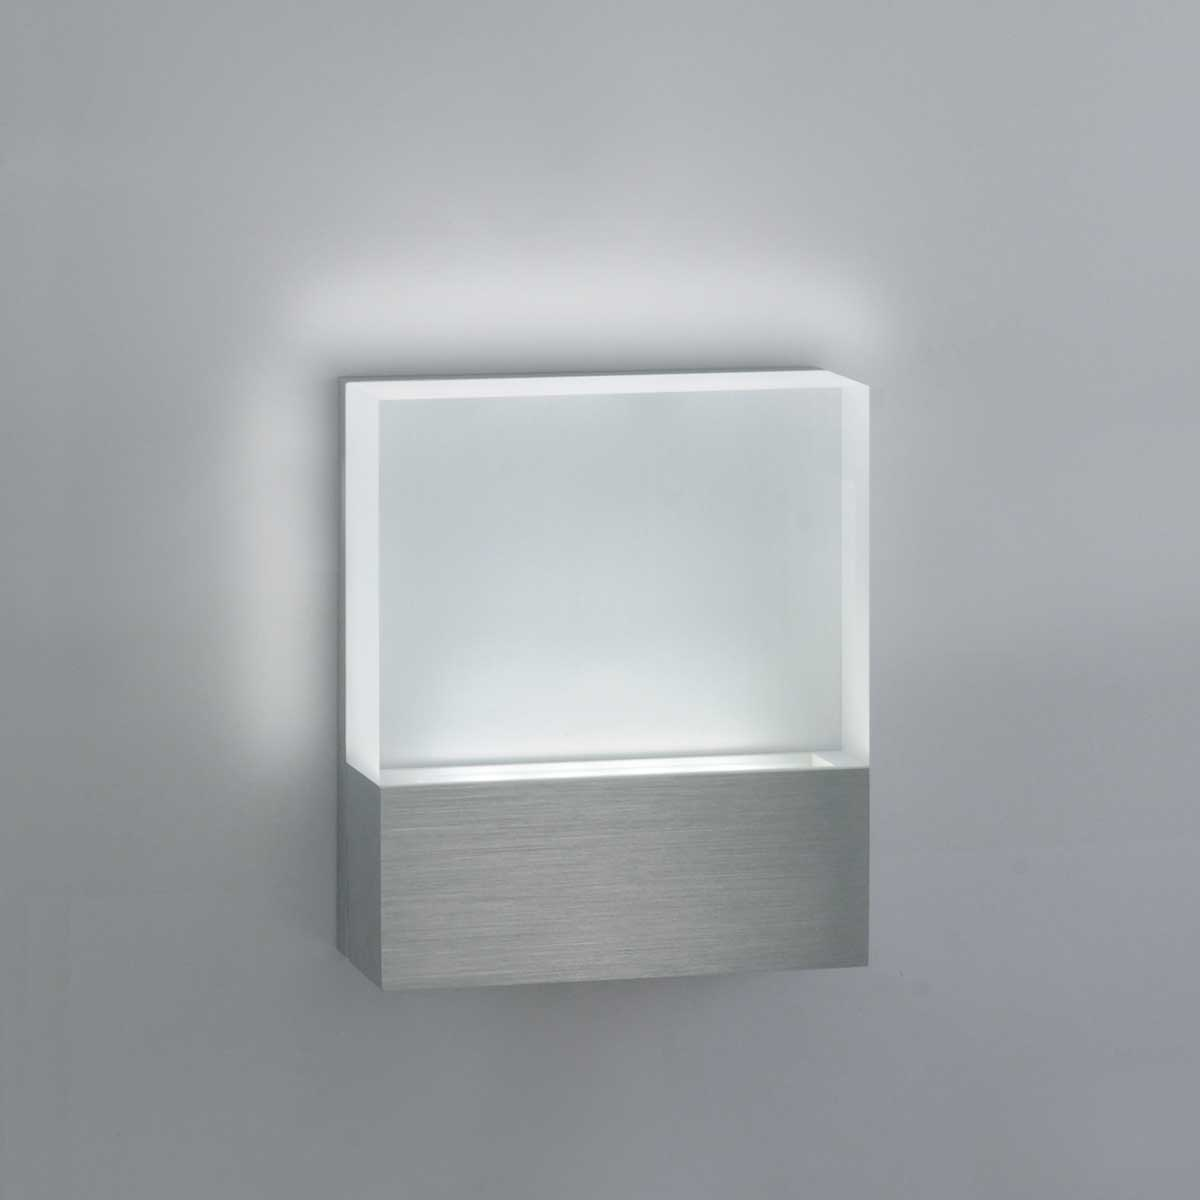 Wall Mounted Tv Fixtures : Functions of Wall mounted led light fixtures Warisan Lighting